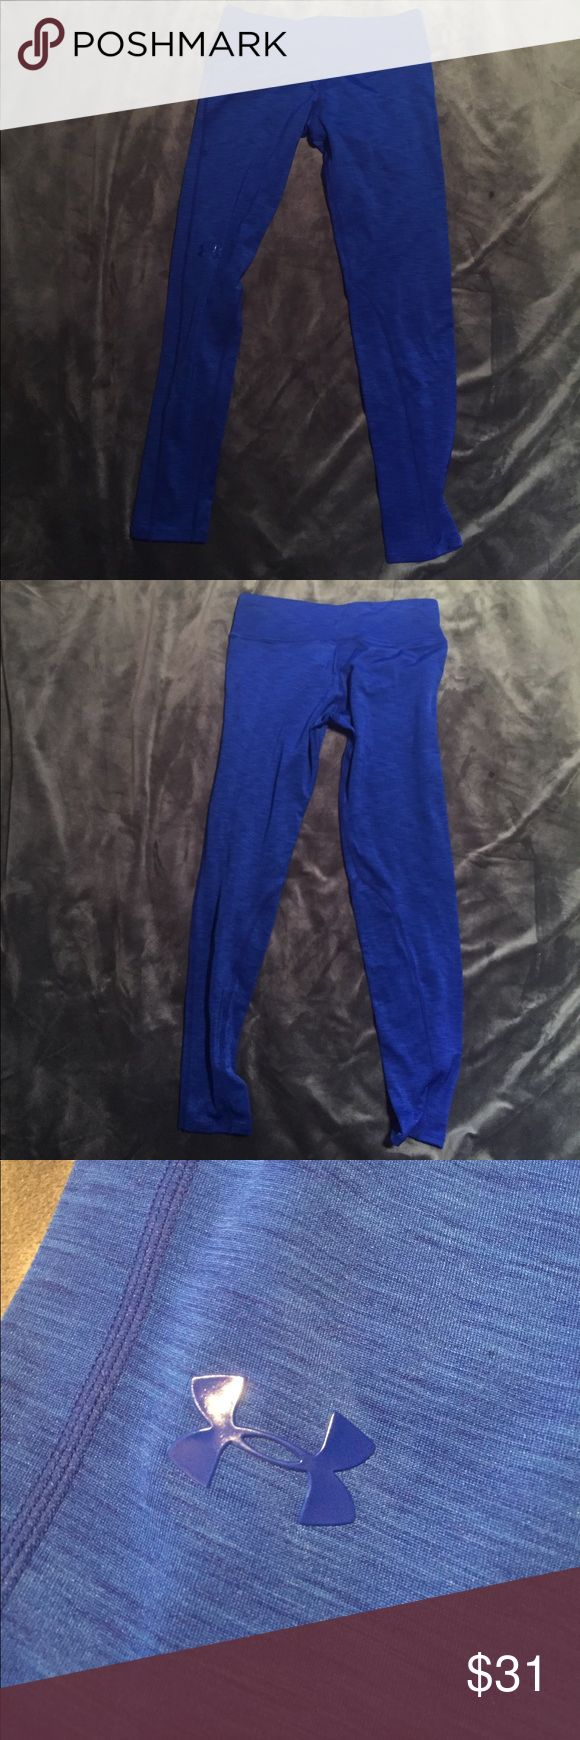 Underarmour heat gear leggings Under armour coldgear leggings in a beautiful cobalt blue color from under armour Japan, new with tags Under Armour Pants Leggings